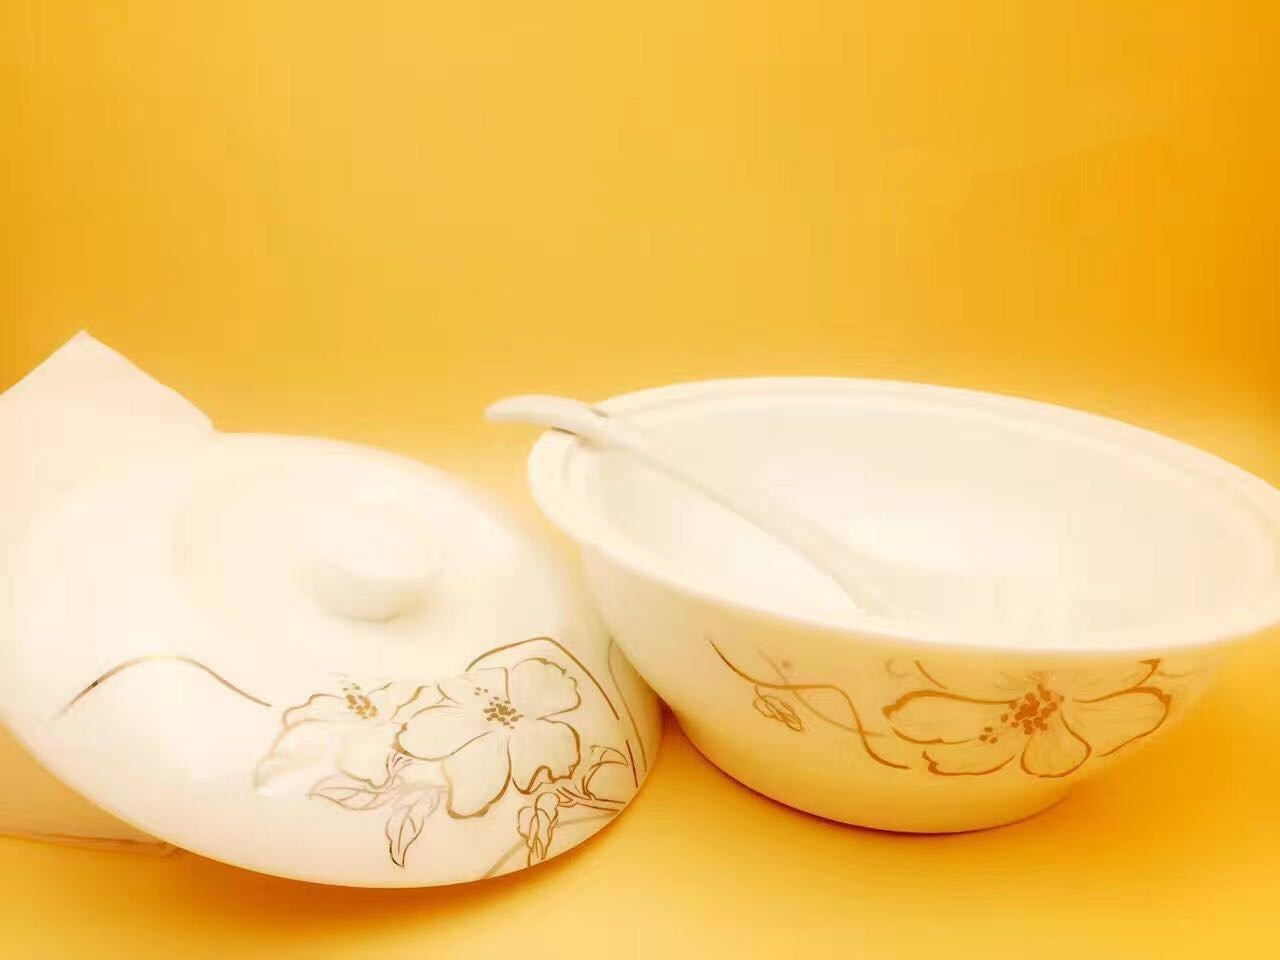 9 Inches of New Bone China Soup Bowl